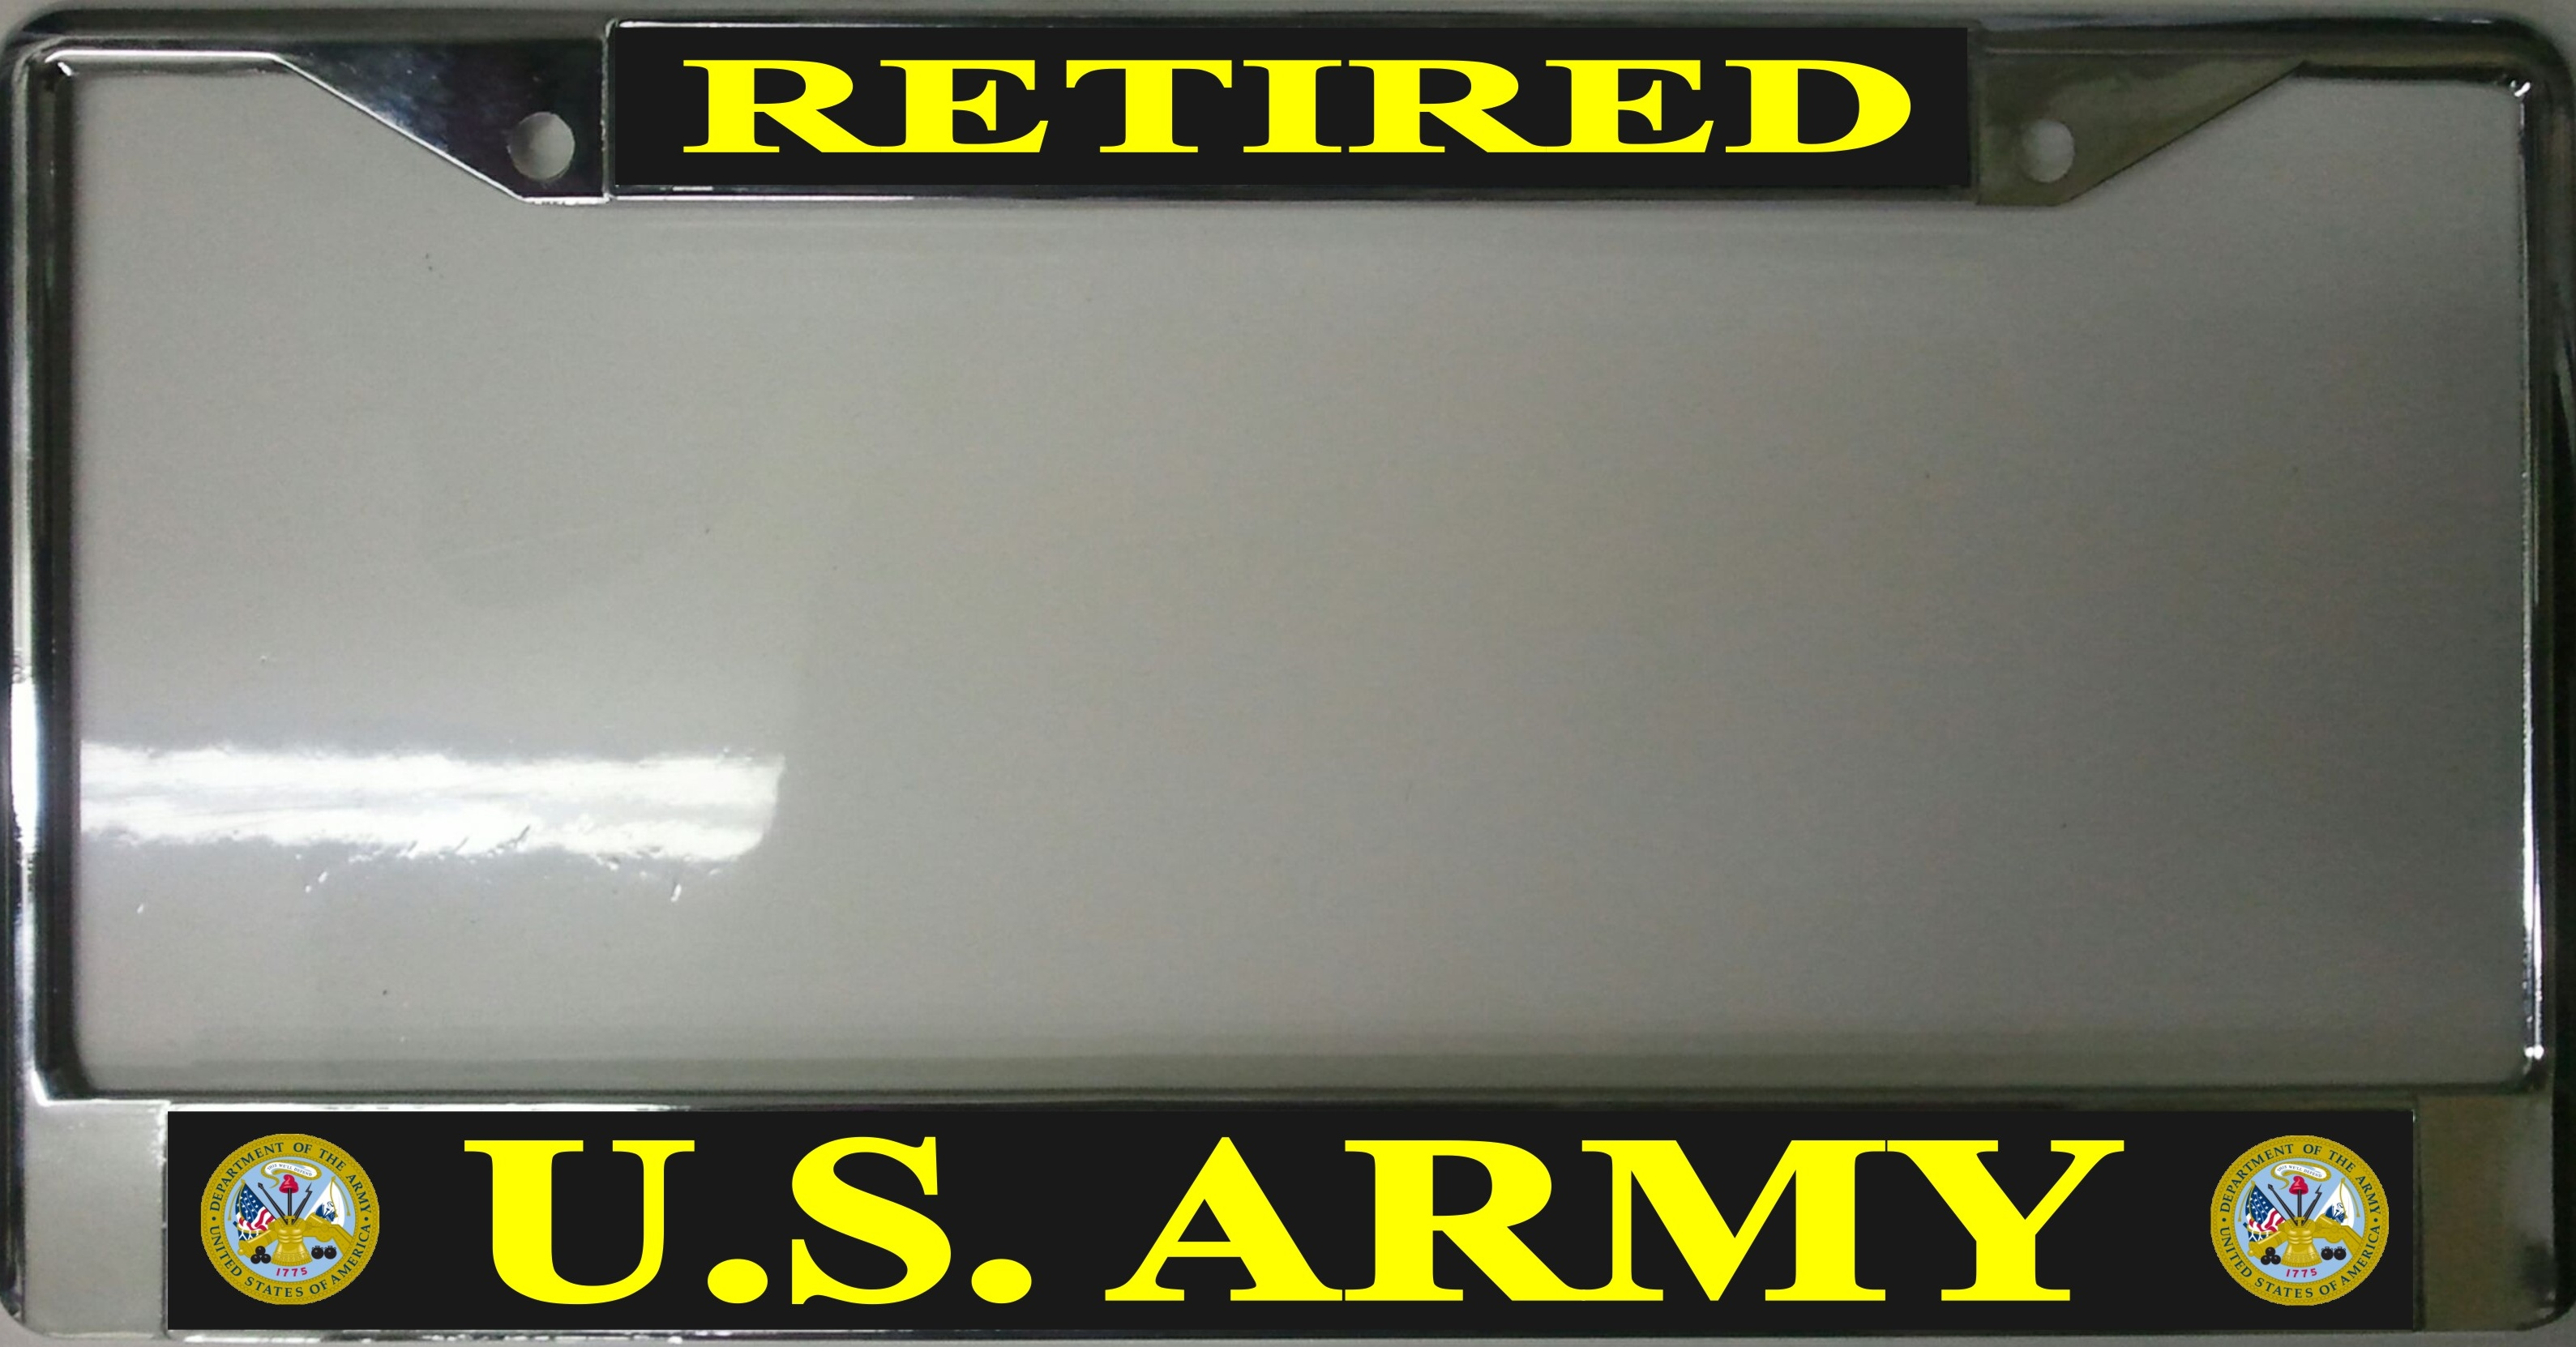 U.S. ARMY Retired Photo License Plate Frame   Free Screw CAPs with this Frame